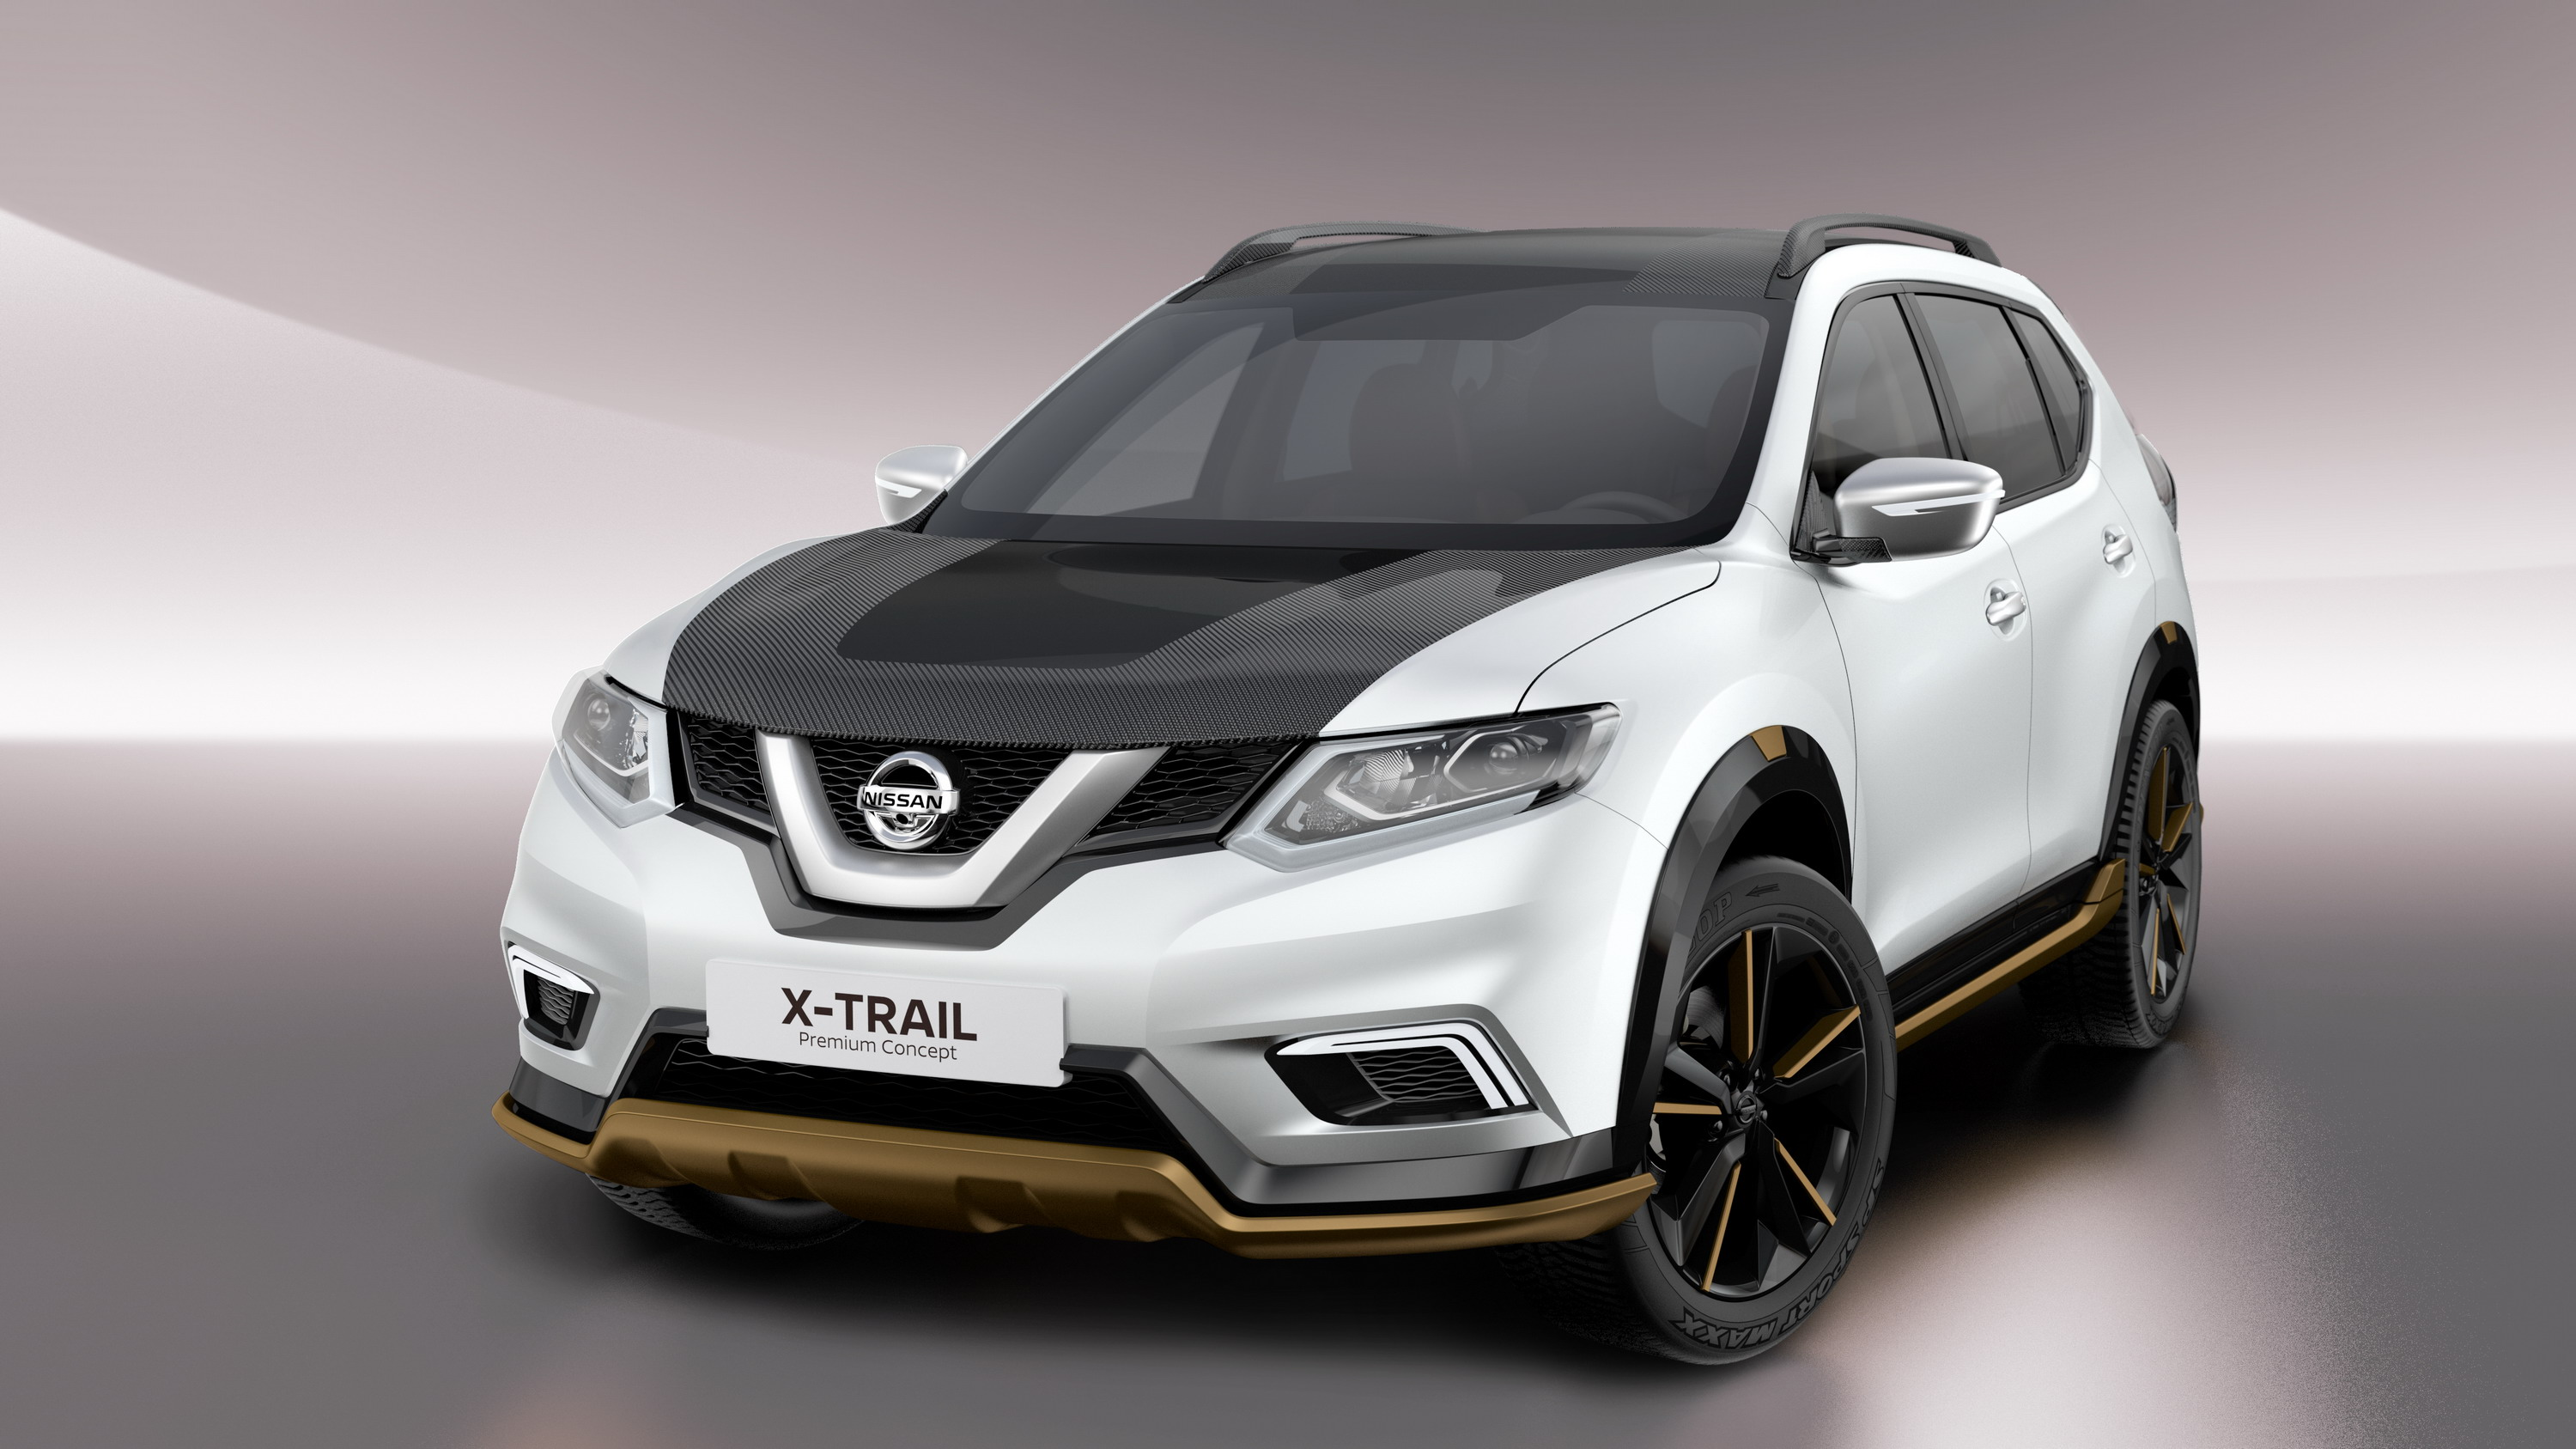 2016 nissan x trail premium concept top speed. Black Bedroom Furniture Sets. Home Design Ideas